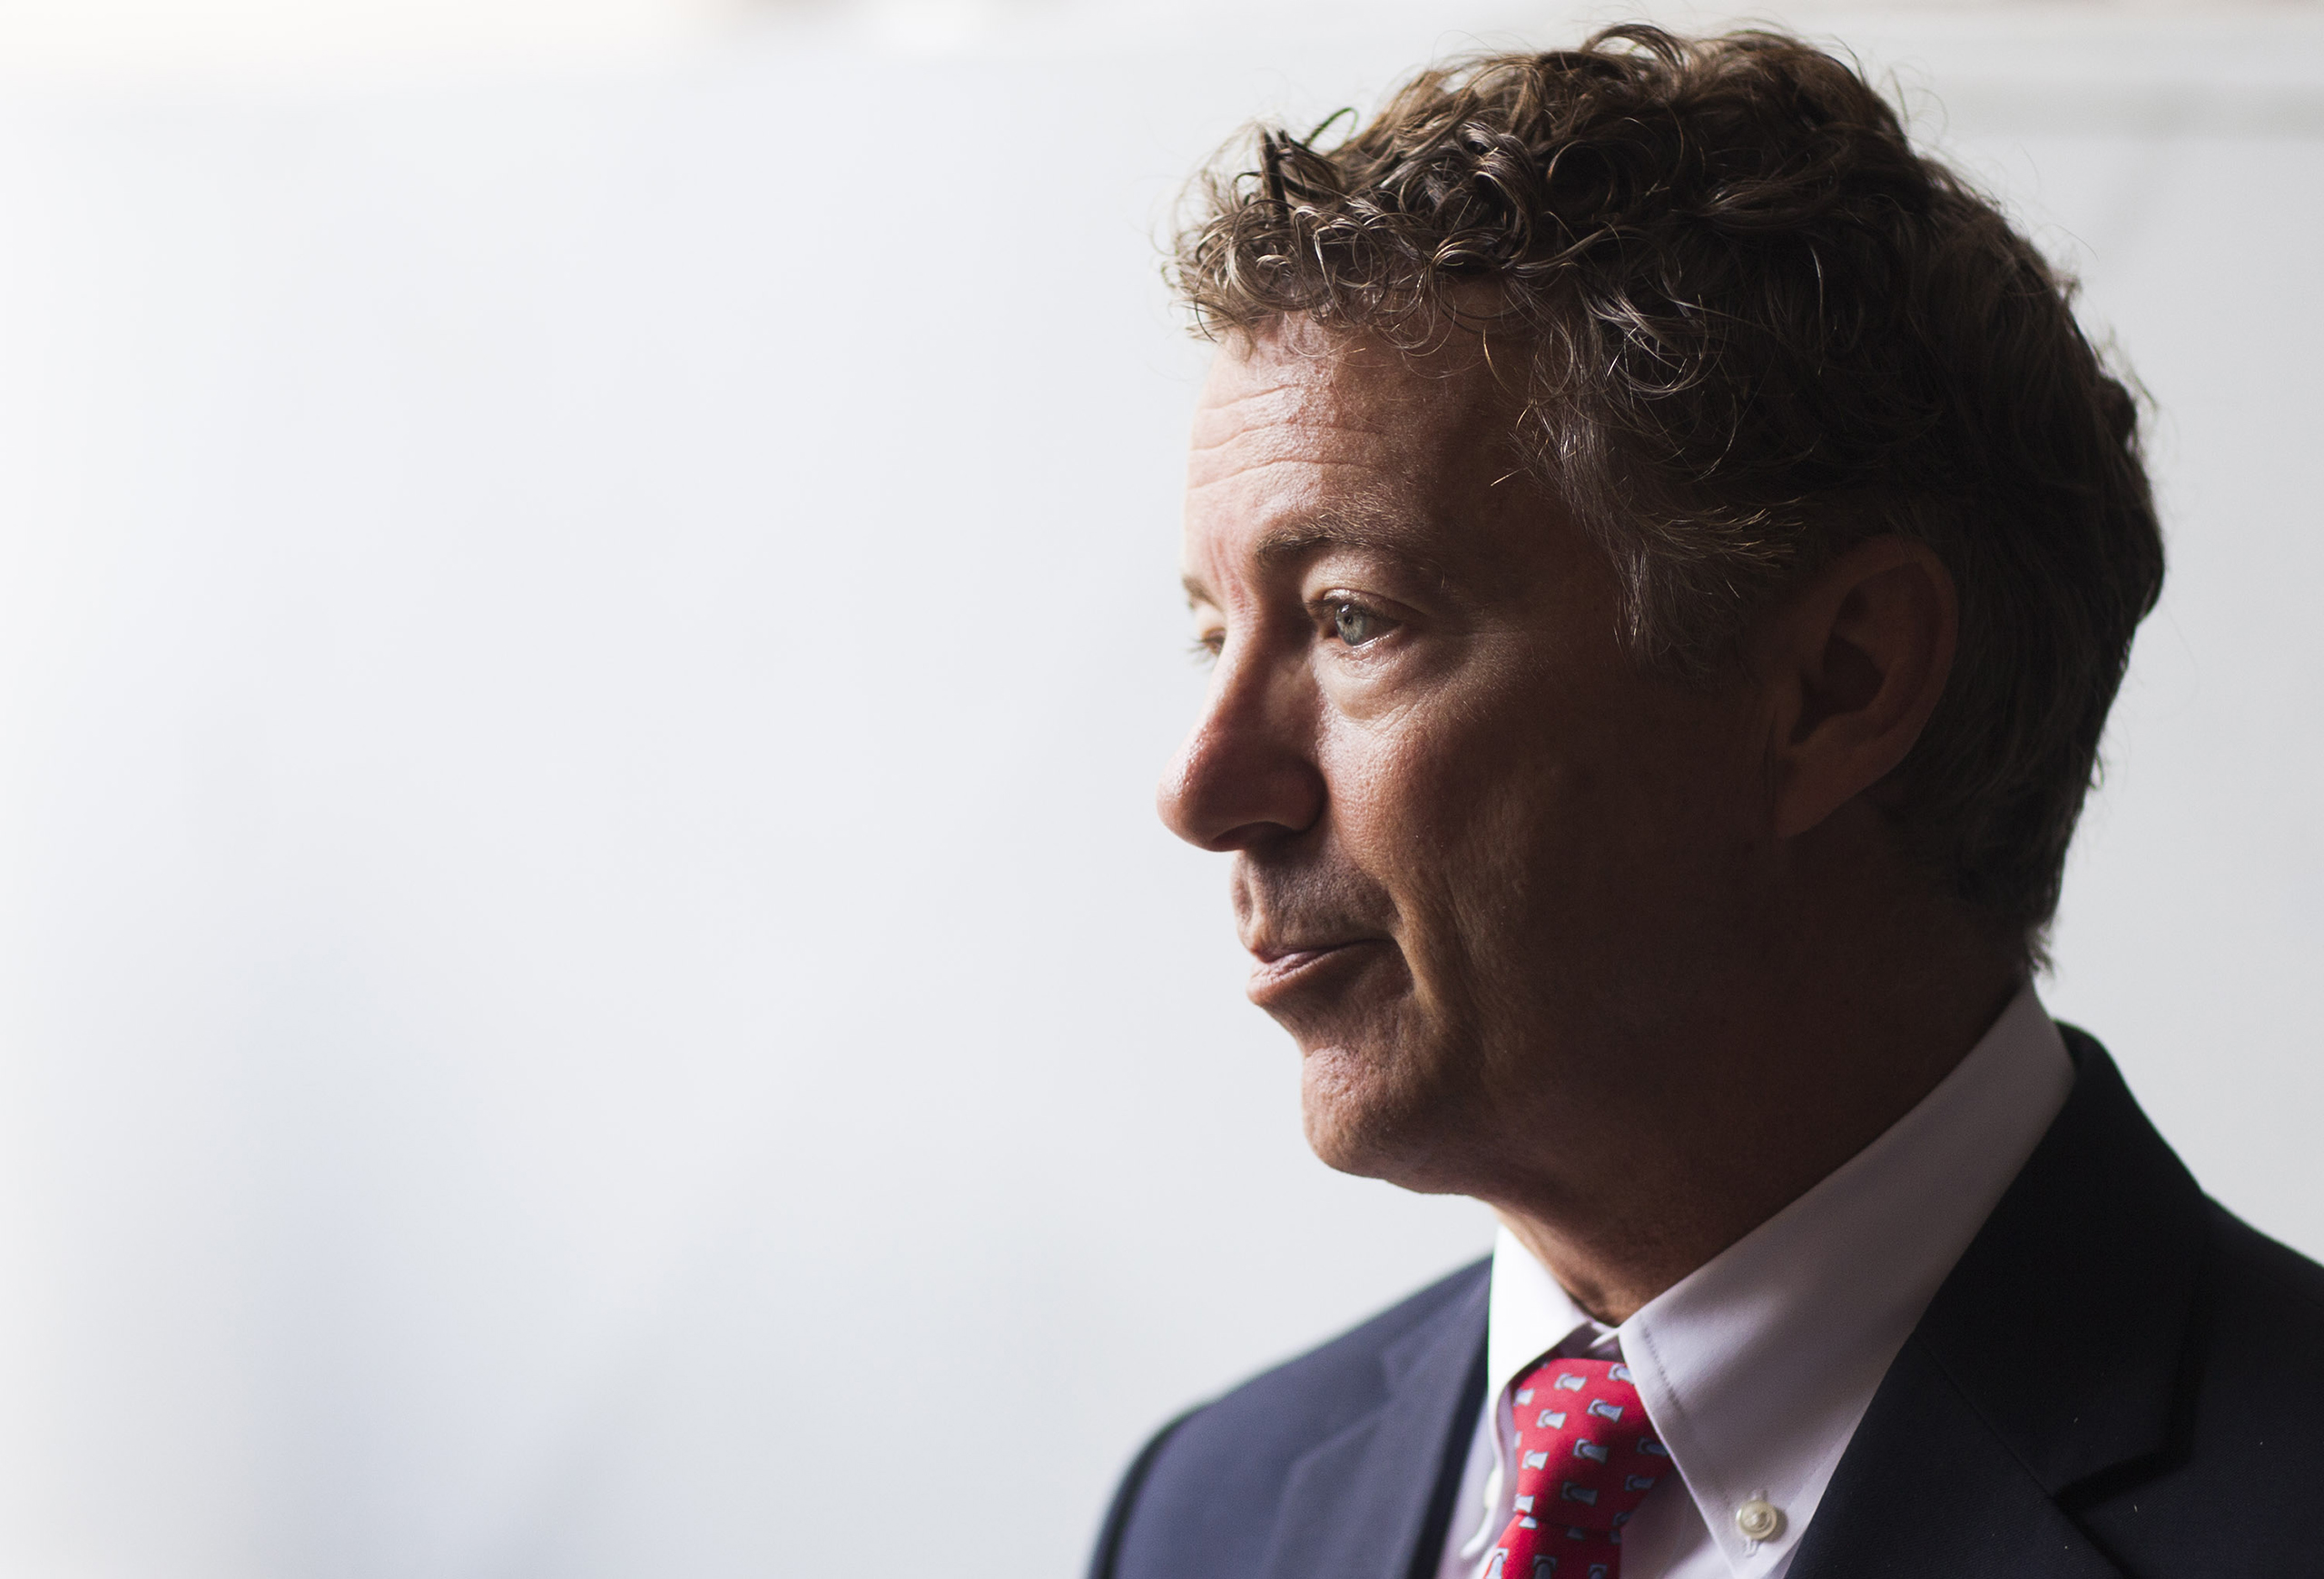 Sen. Rand Paul answers questions from the media after speaking to students at Western Kentucky University on Monday, Oct. 3, 2016, in the Grise Hall auditorium in Bowling Green, Ky.